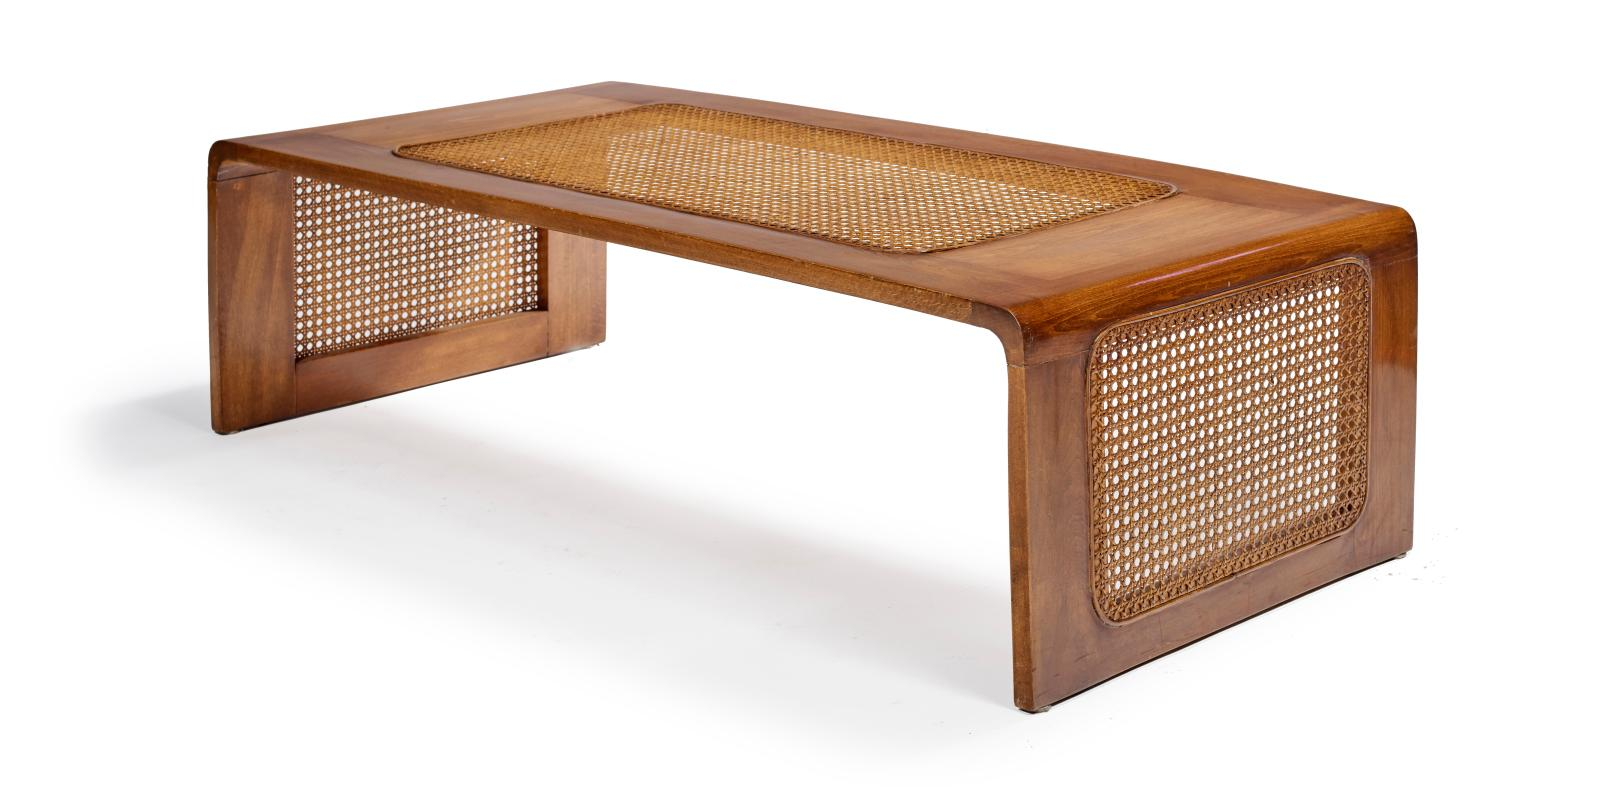 €8,576 French, 1950s–1960s, coffee table in stained beech and woven rattan, 32 x 114 x 54 cm/ 12.60 x 44.88 x 21.26 in.Paris, Drouot, Dece